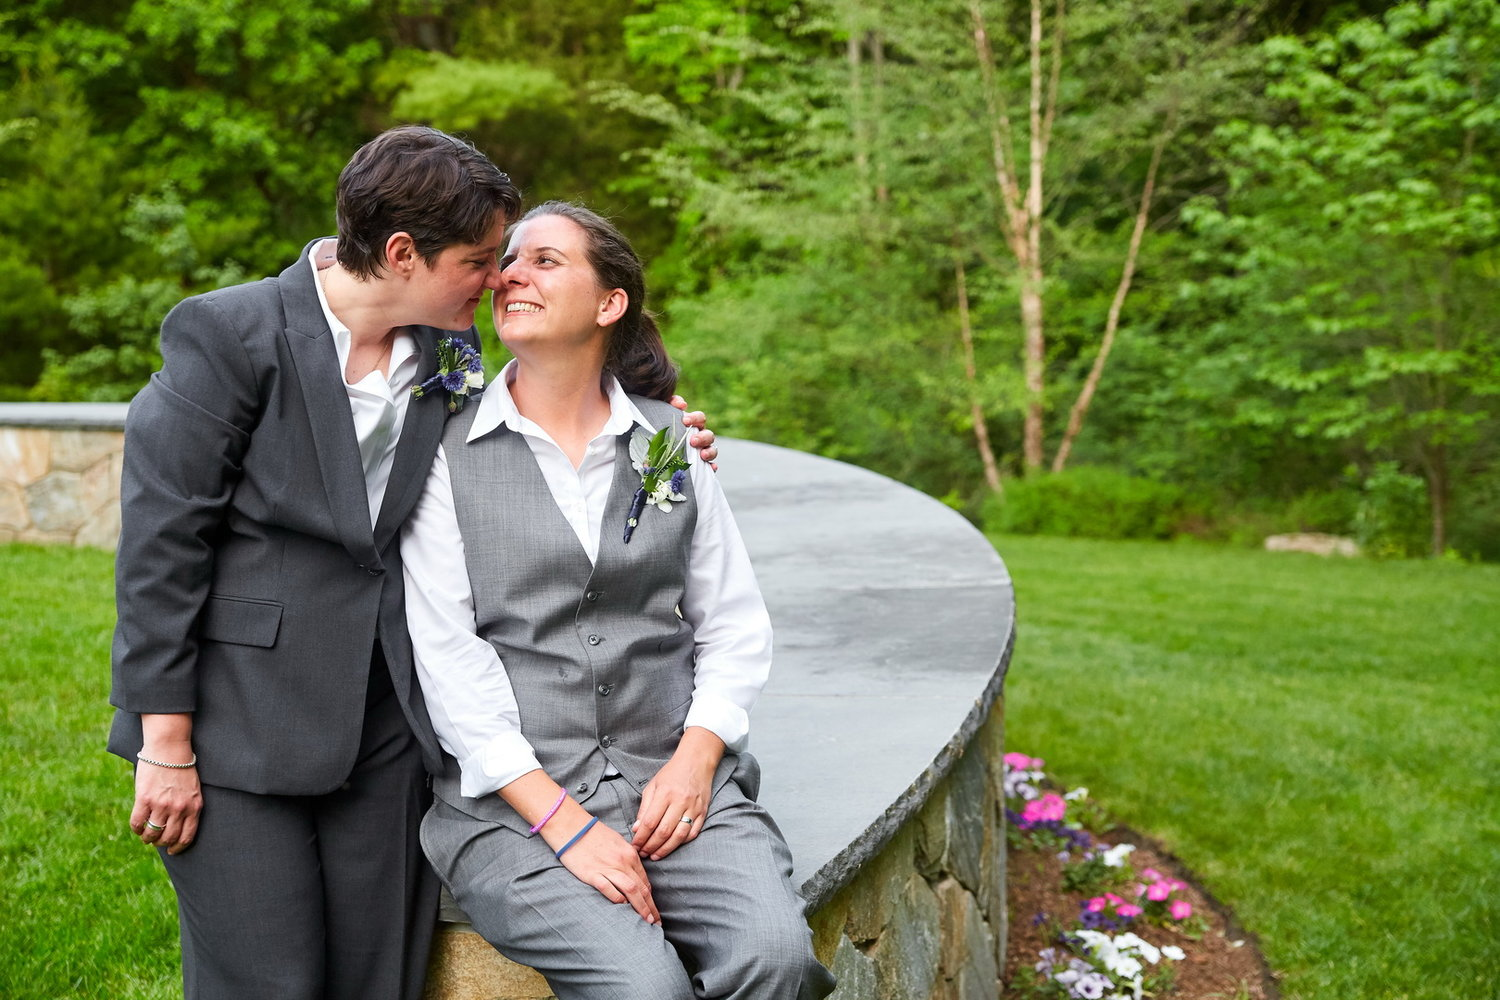 luxe-by-lindsay-charleston-south-carolina-sc-lowcountry-wedding-photographer-lgbtq-same-sex-brides-nuzzle.jpg